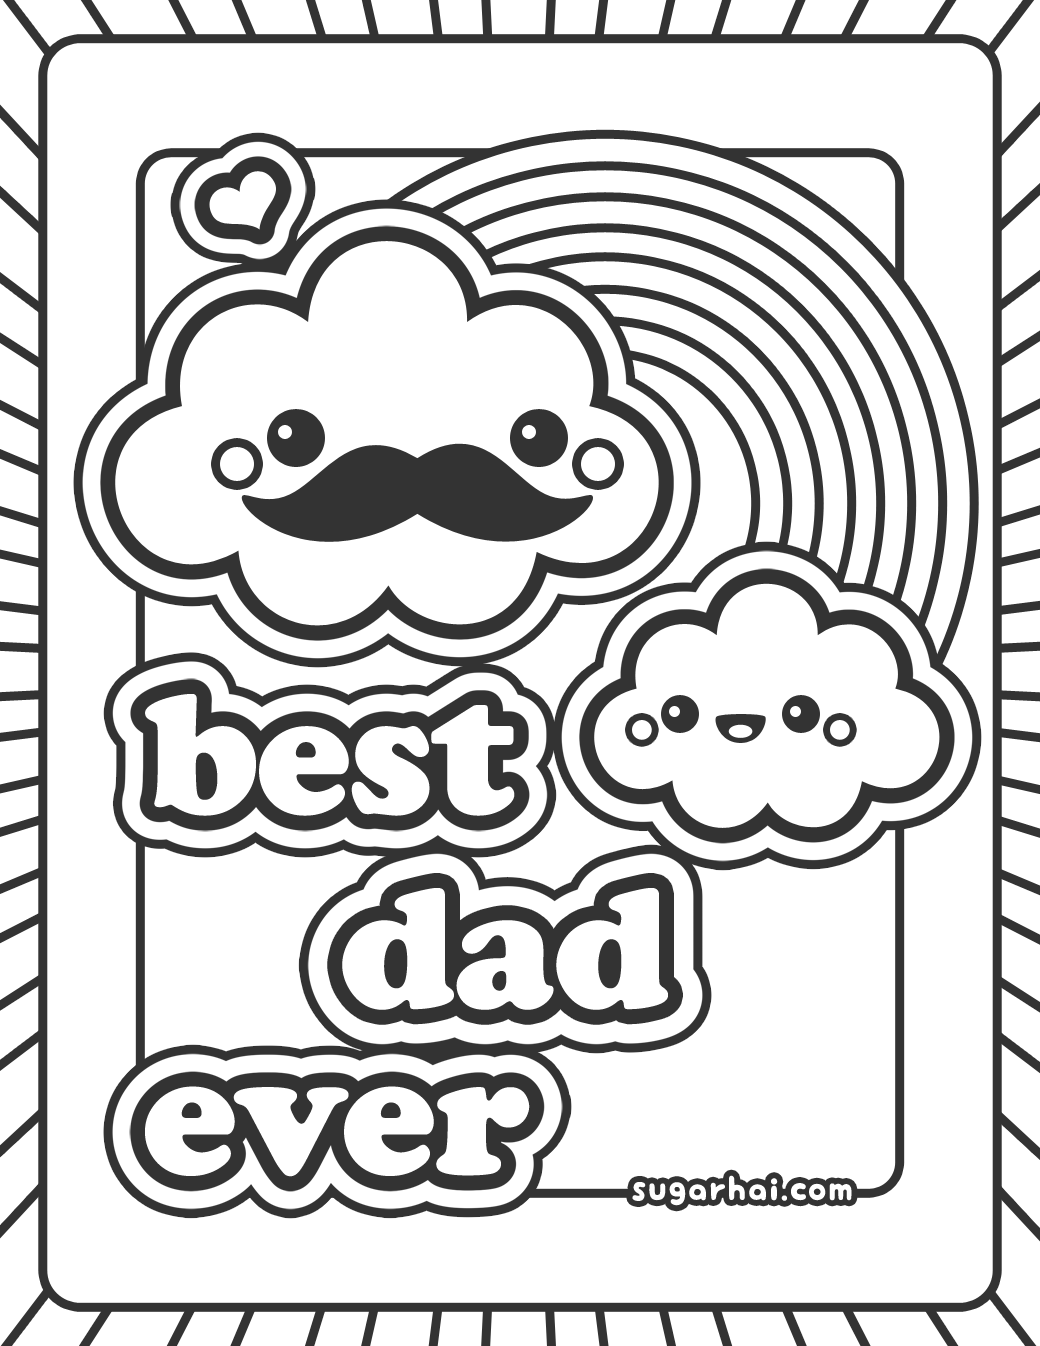 1040x1346 Free Best Dad Ever Coloring Page Dads, Cloud And Kawaii